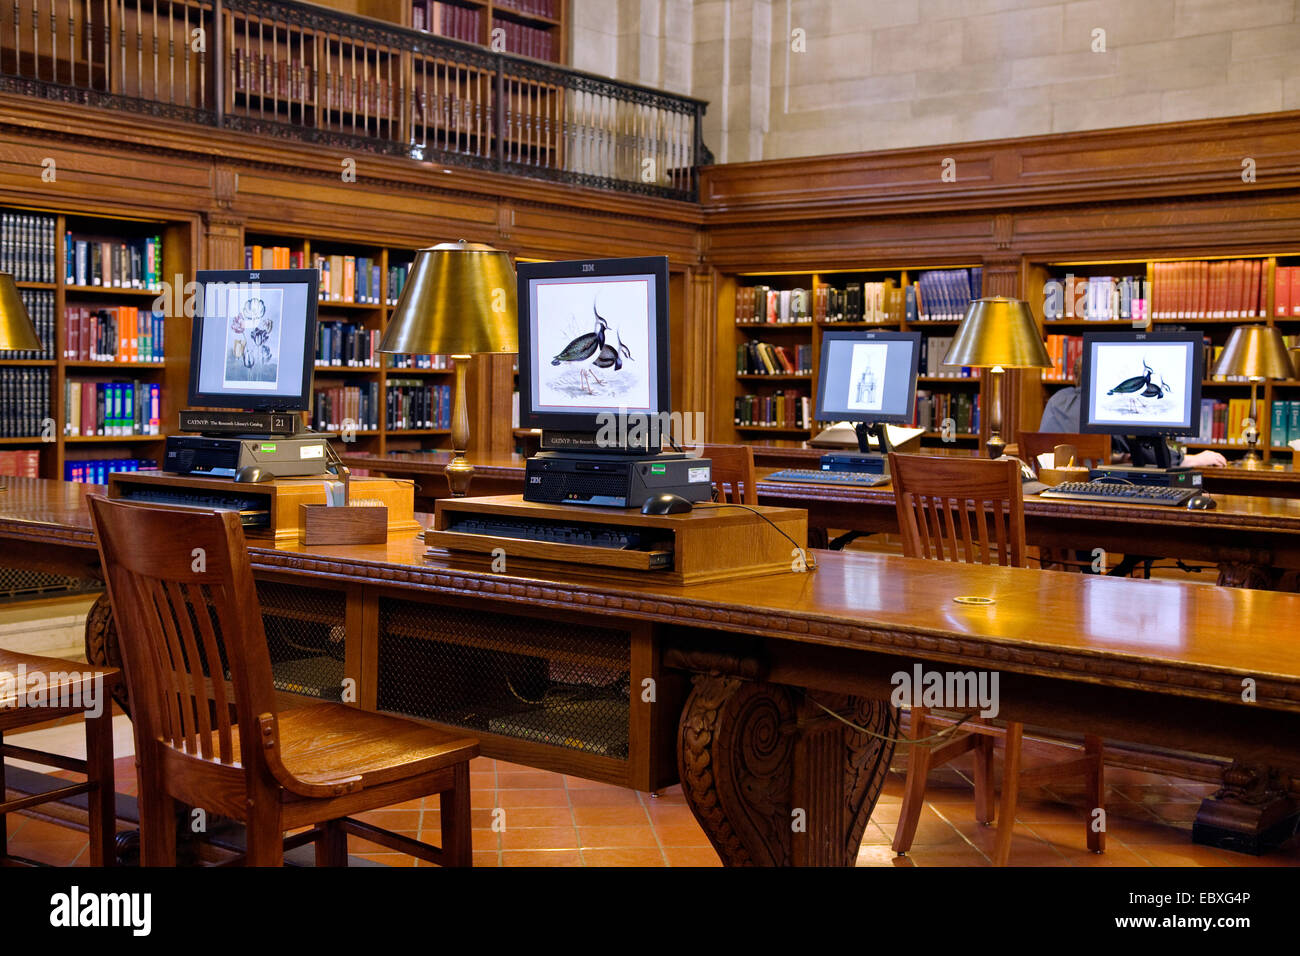 COMPUTER TERMINALS - ROSE READING ROOM - NEW YORK CITY PUBLIC LIBRARY, USA, New York City - Stock Image